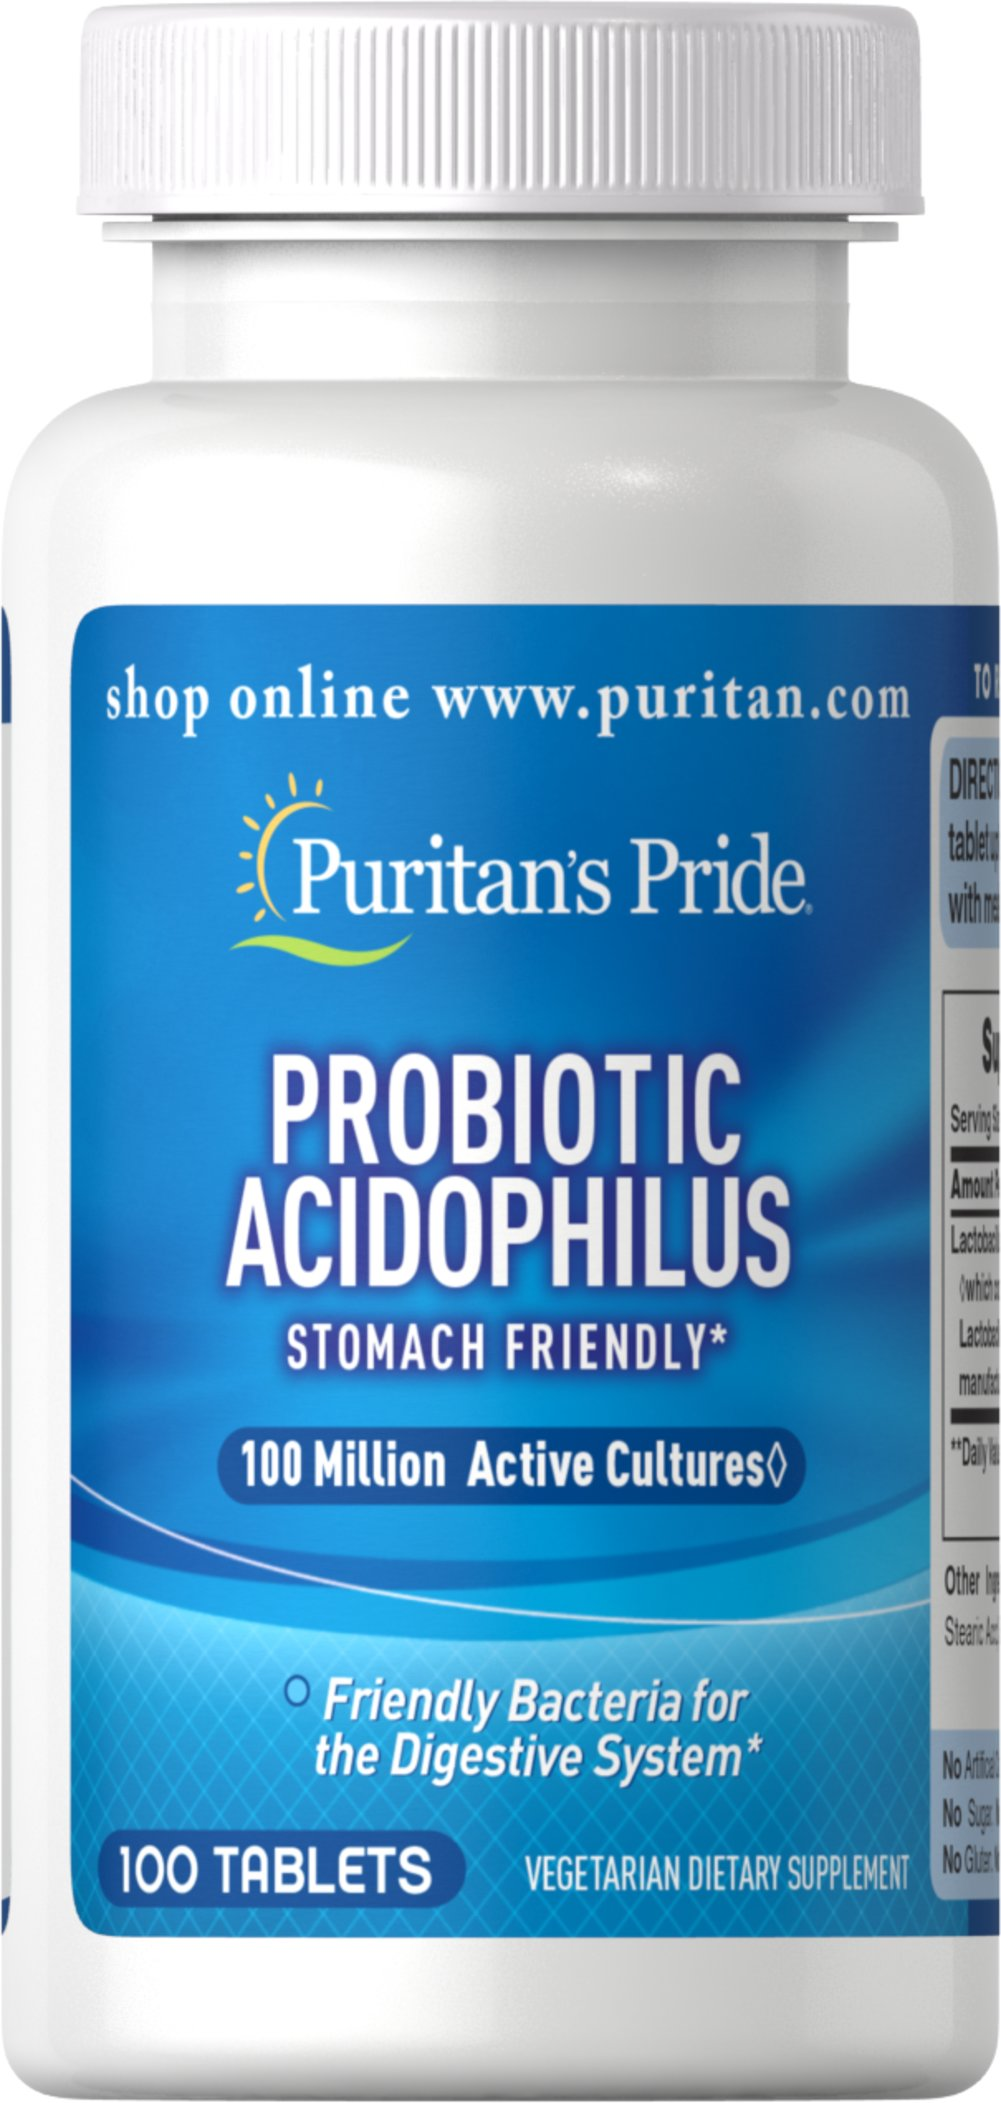 Probiotic Acidophilus <p>New small tablet</p><p>Stomach Friendly</p><p>Friendly bacteria for the Digestive System</p>  100 Tablets  $5.99